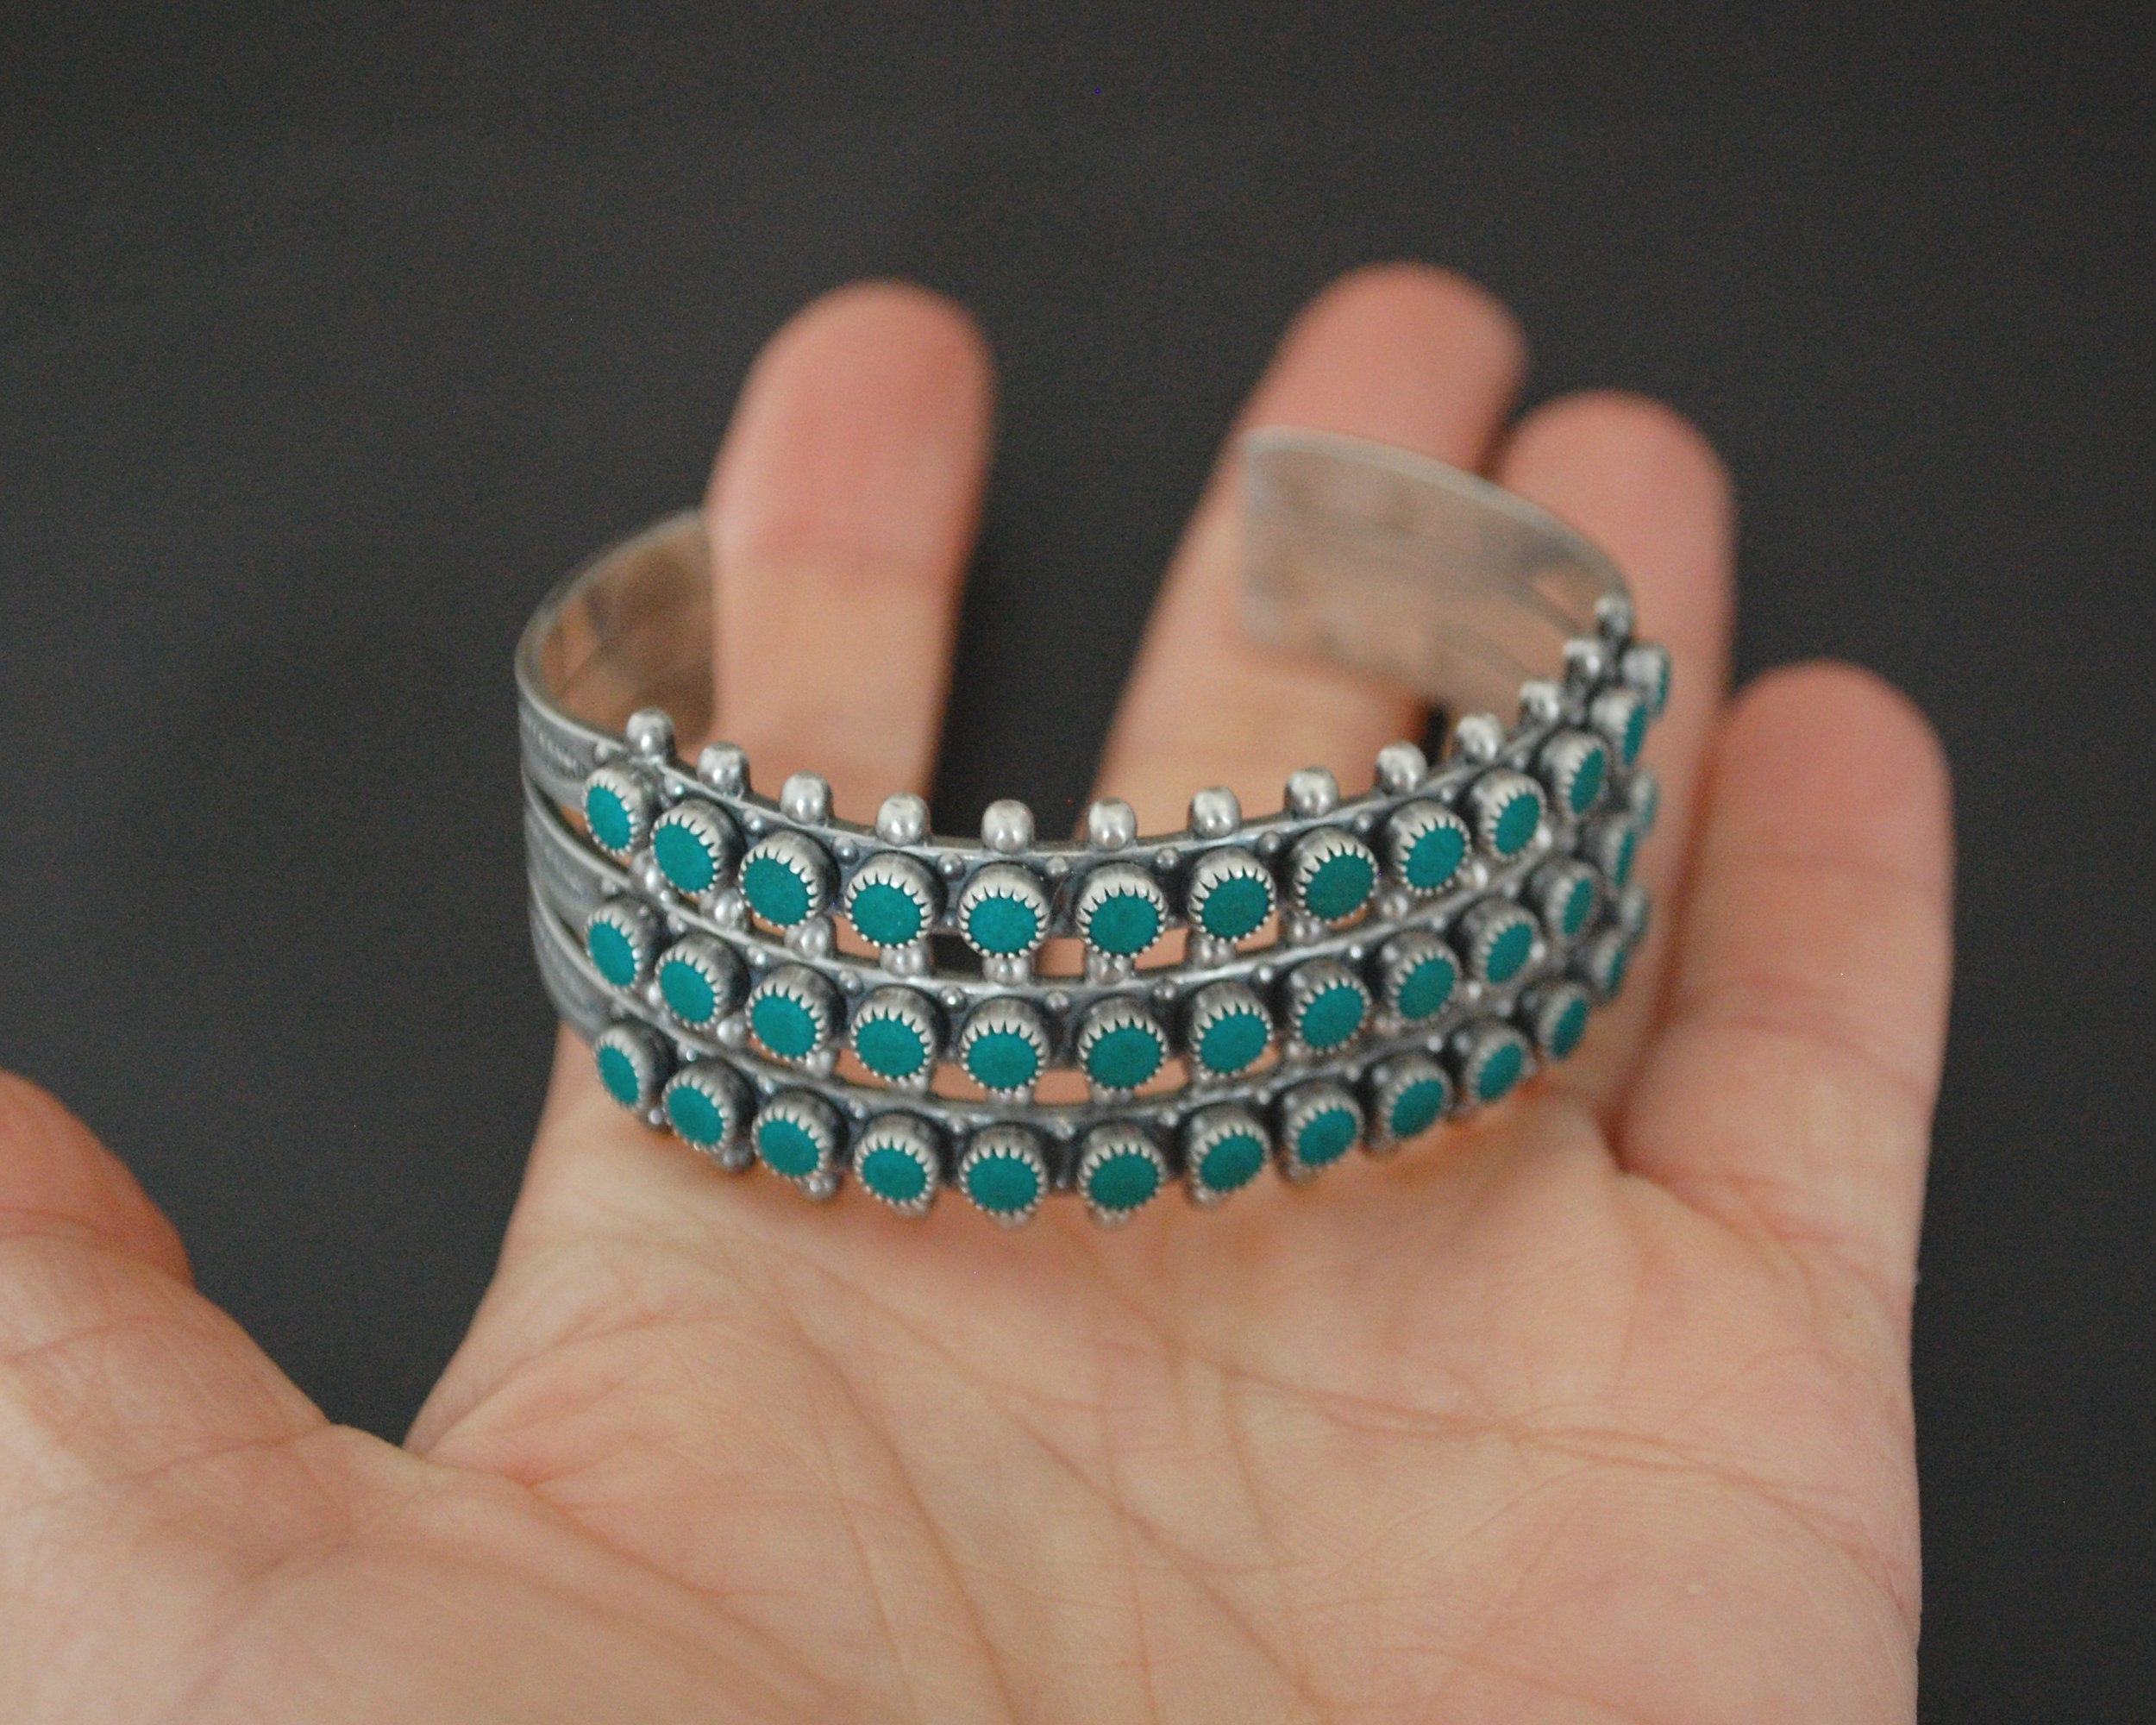 Native American Multirow Petit Point Turquoise Cuff Bracelet with Stampings